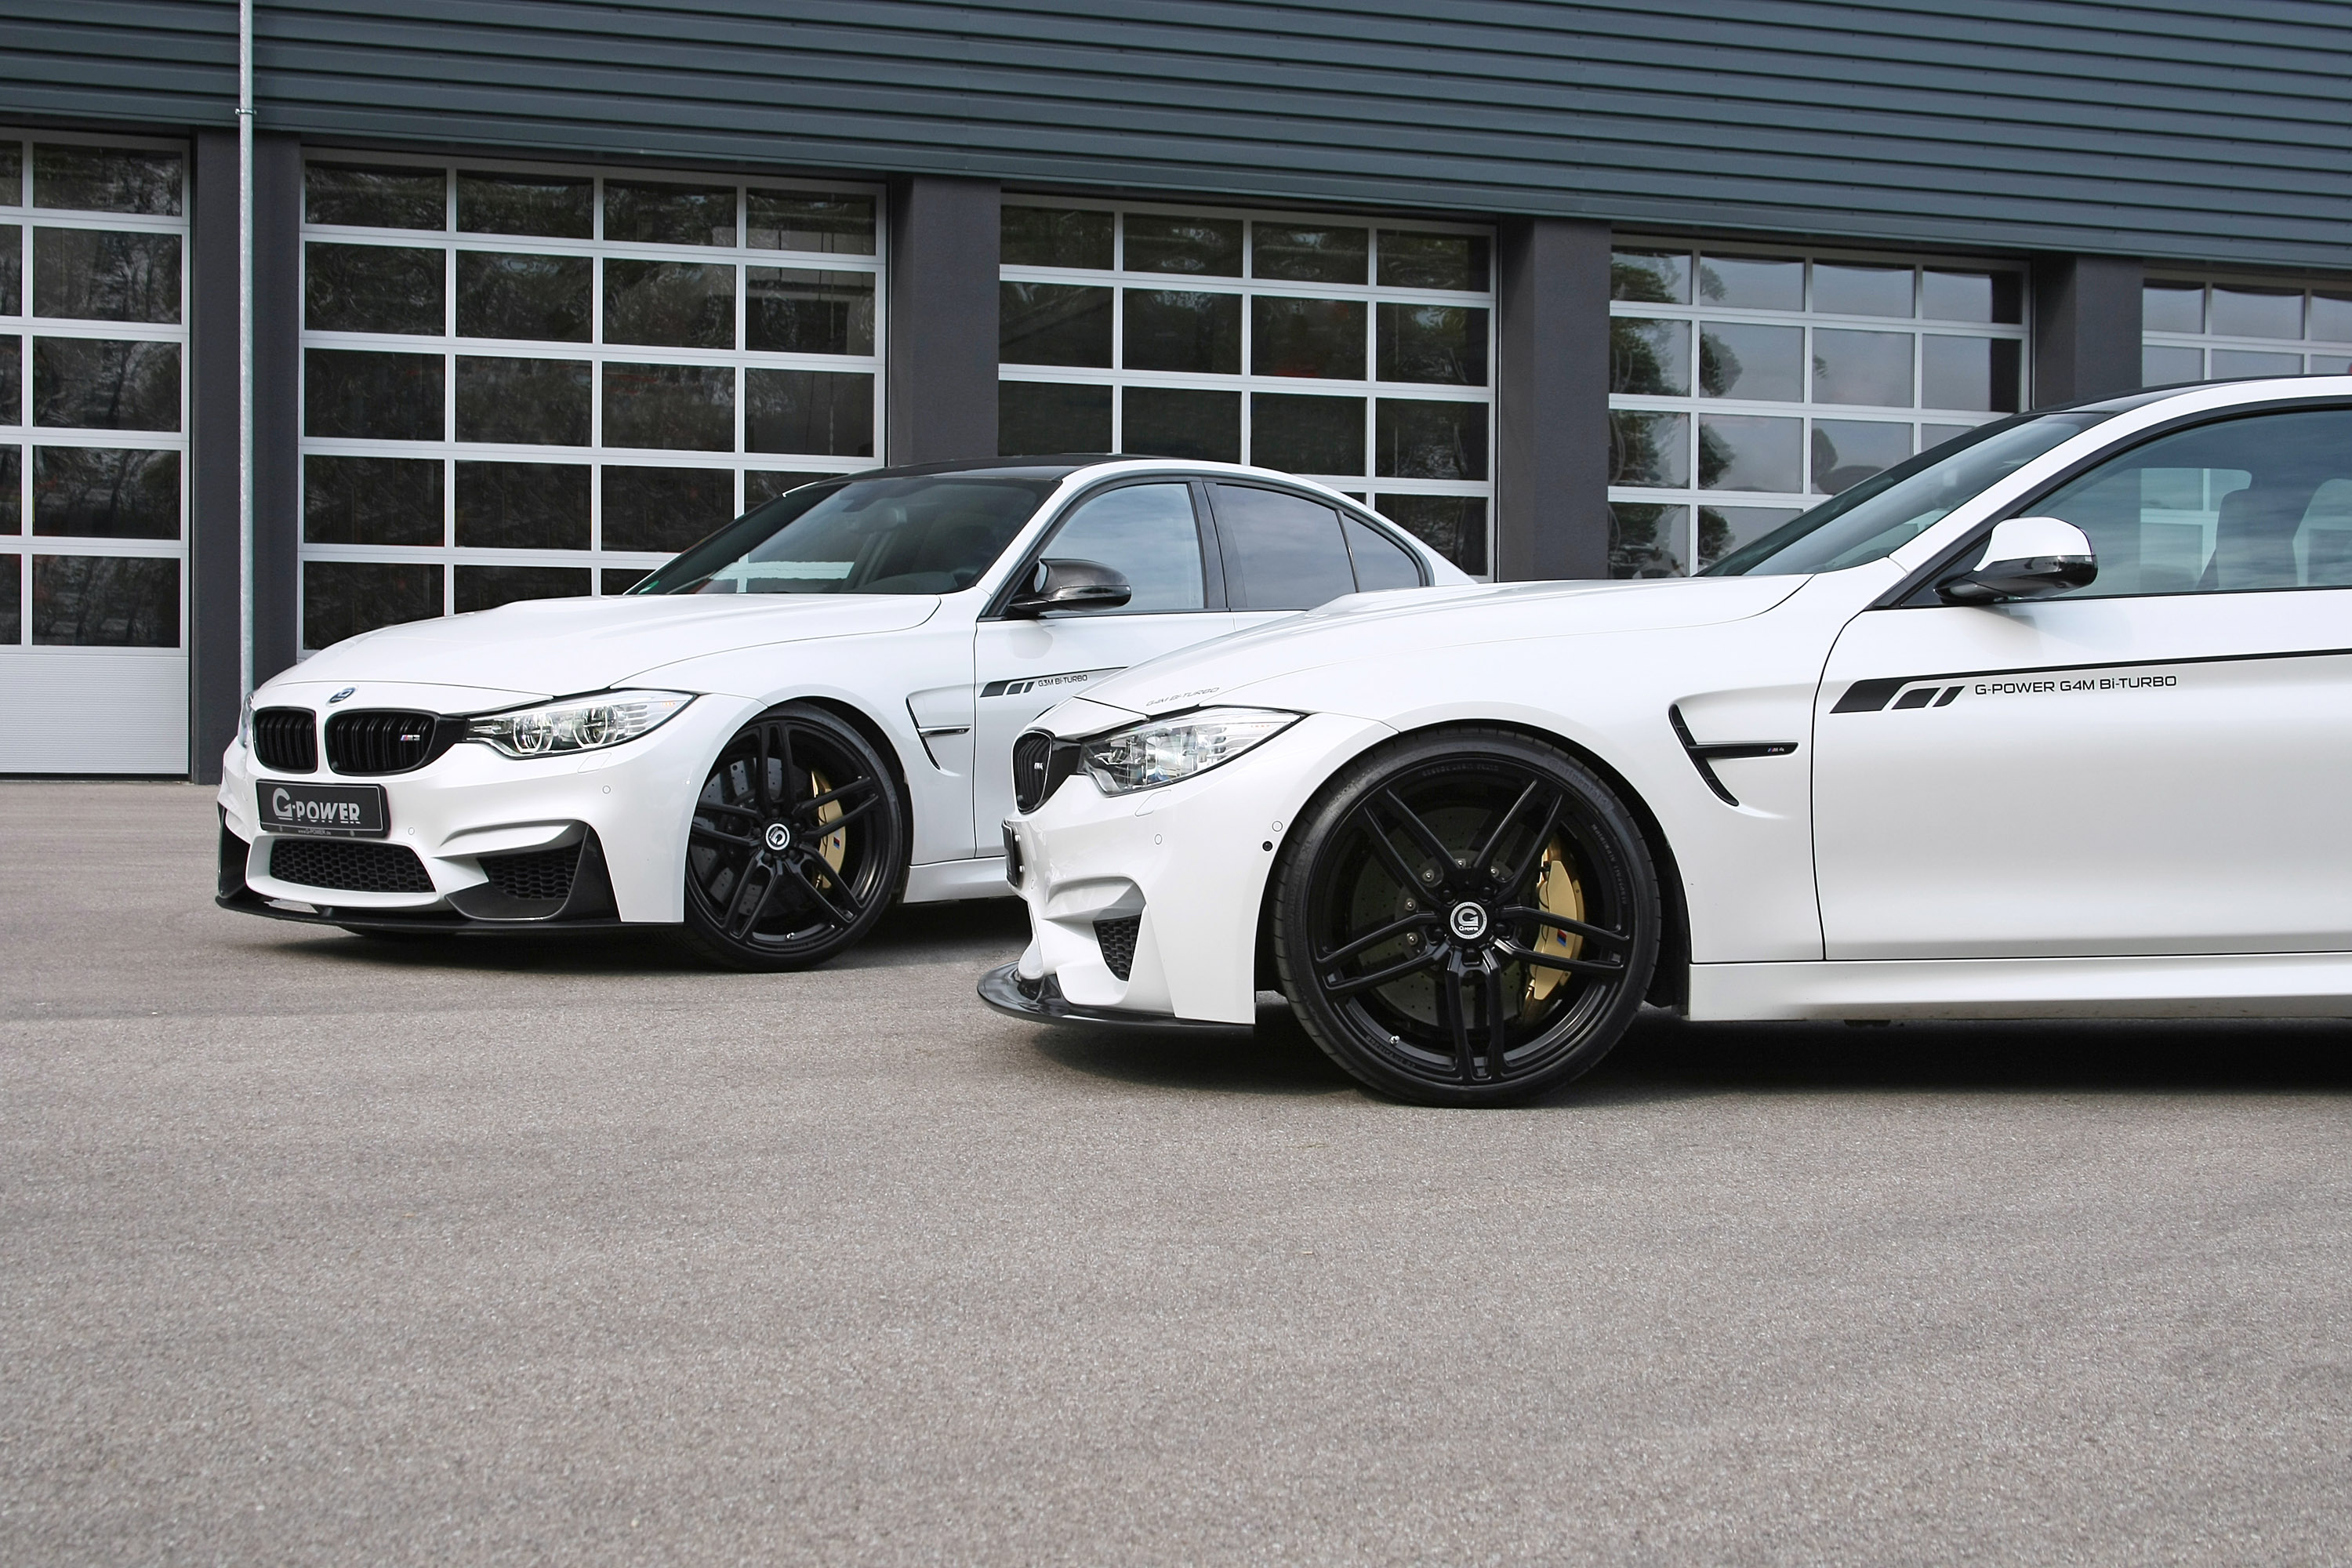 G Power BMW M3 F80 and M4 F82 deliver powerful bined output of